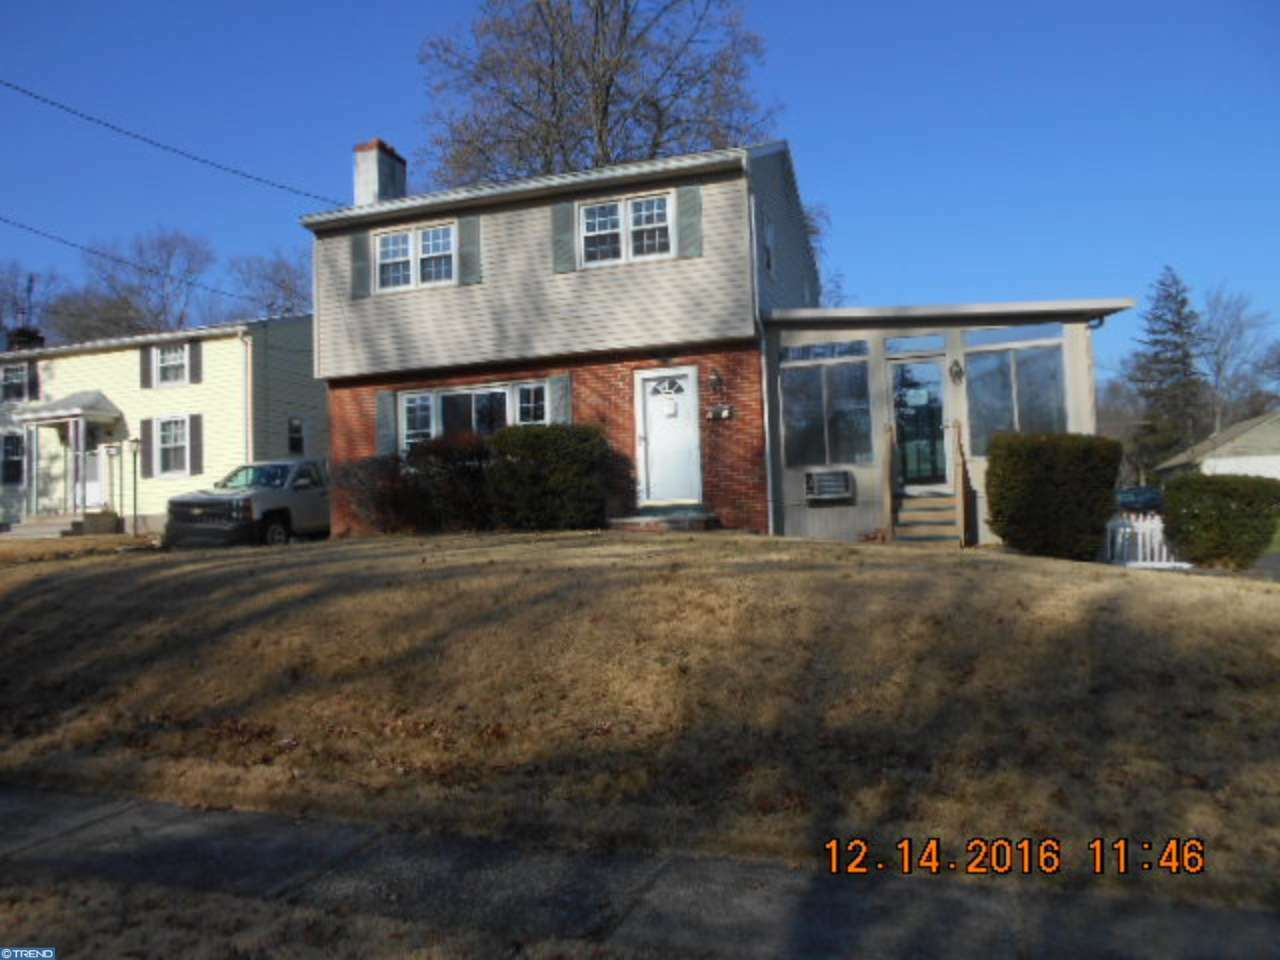 82 W Maple Ave, Morrisville, PA - USA (photo 2)